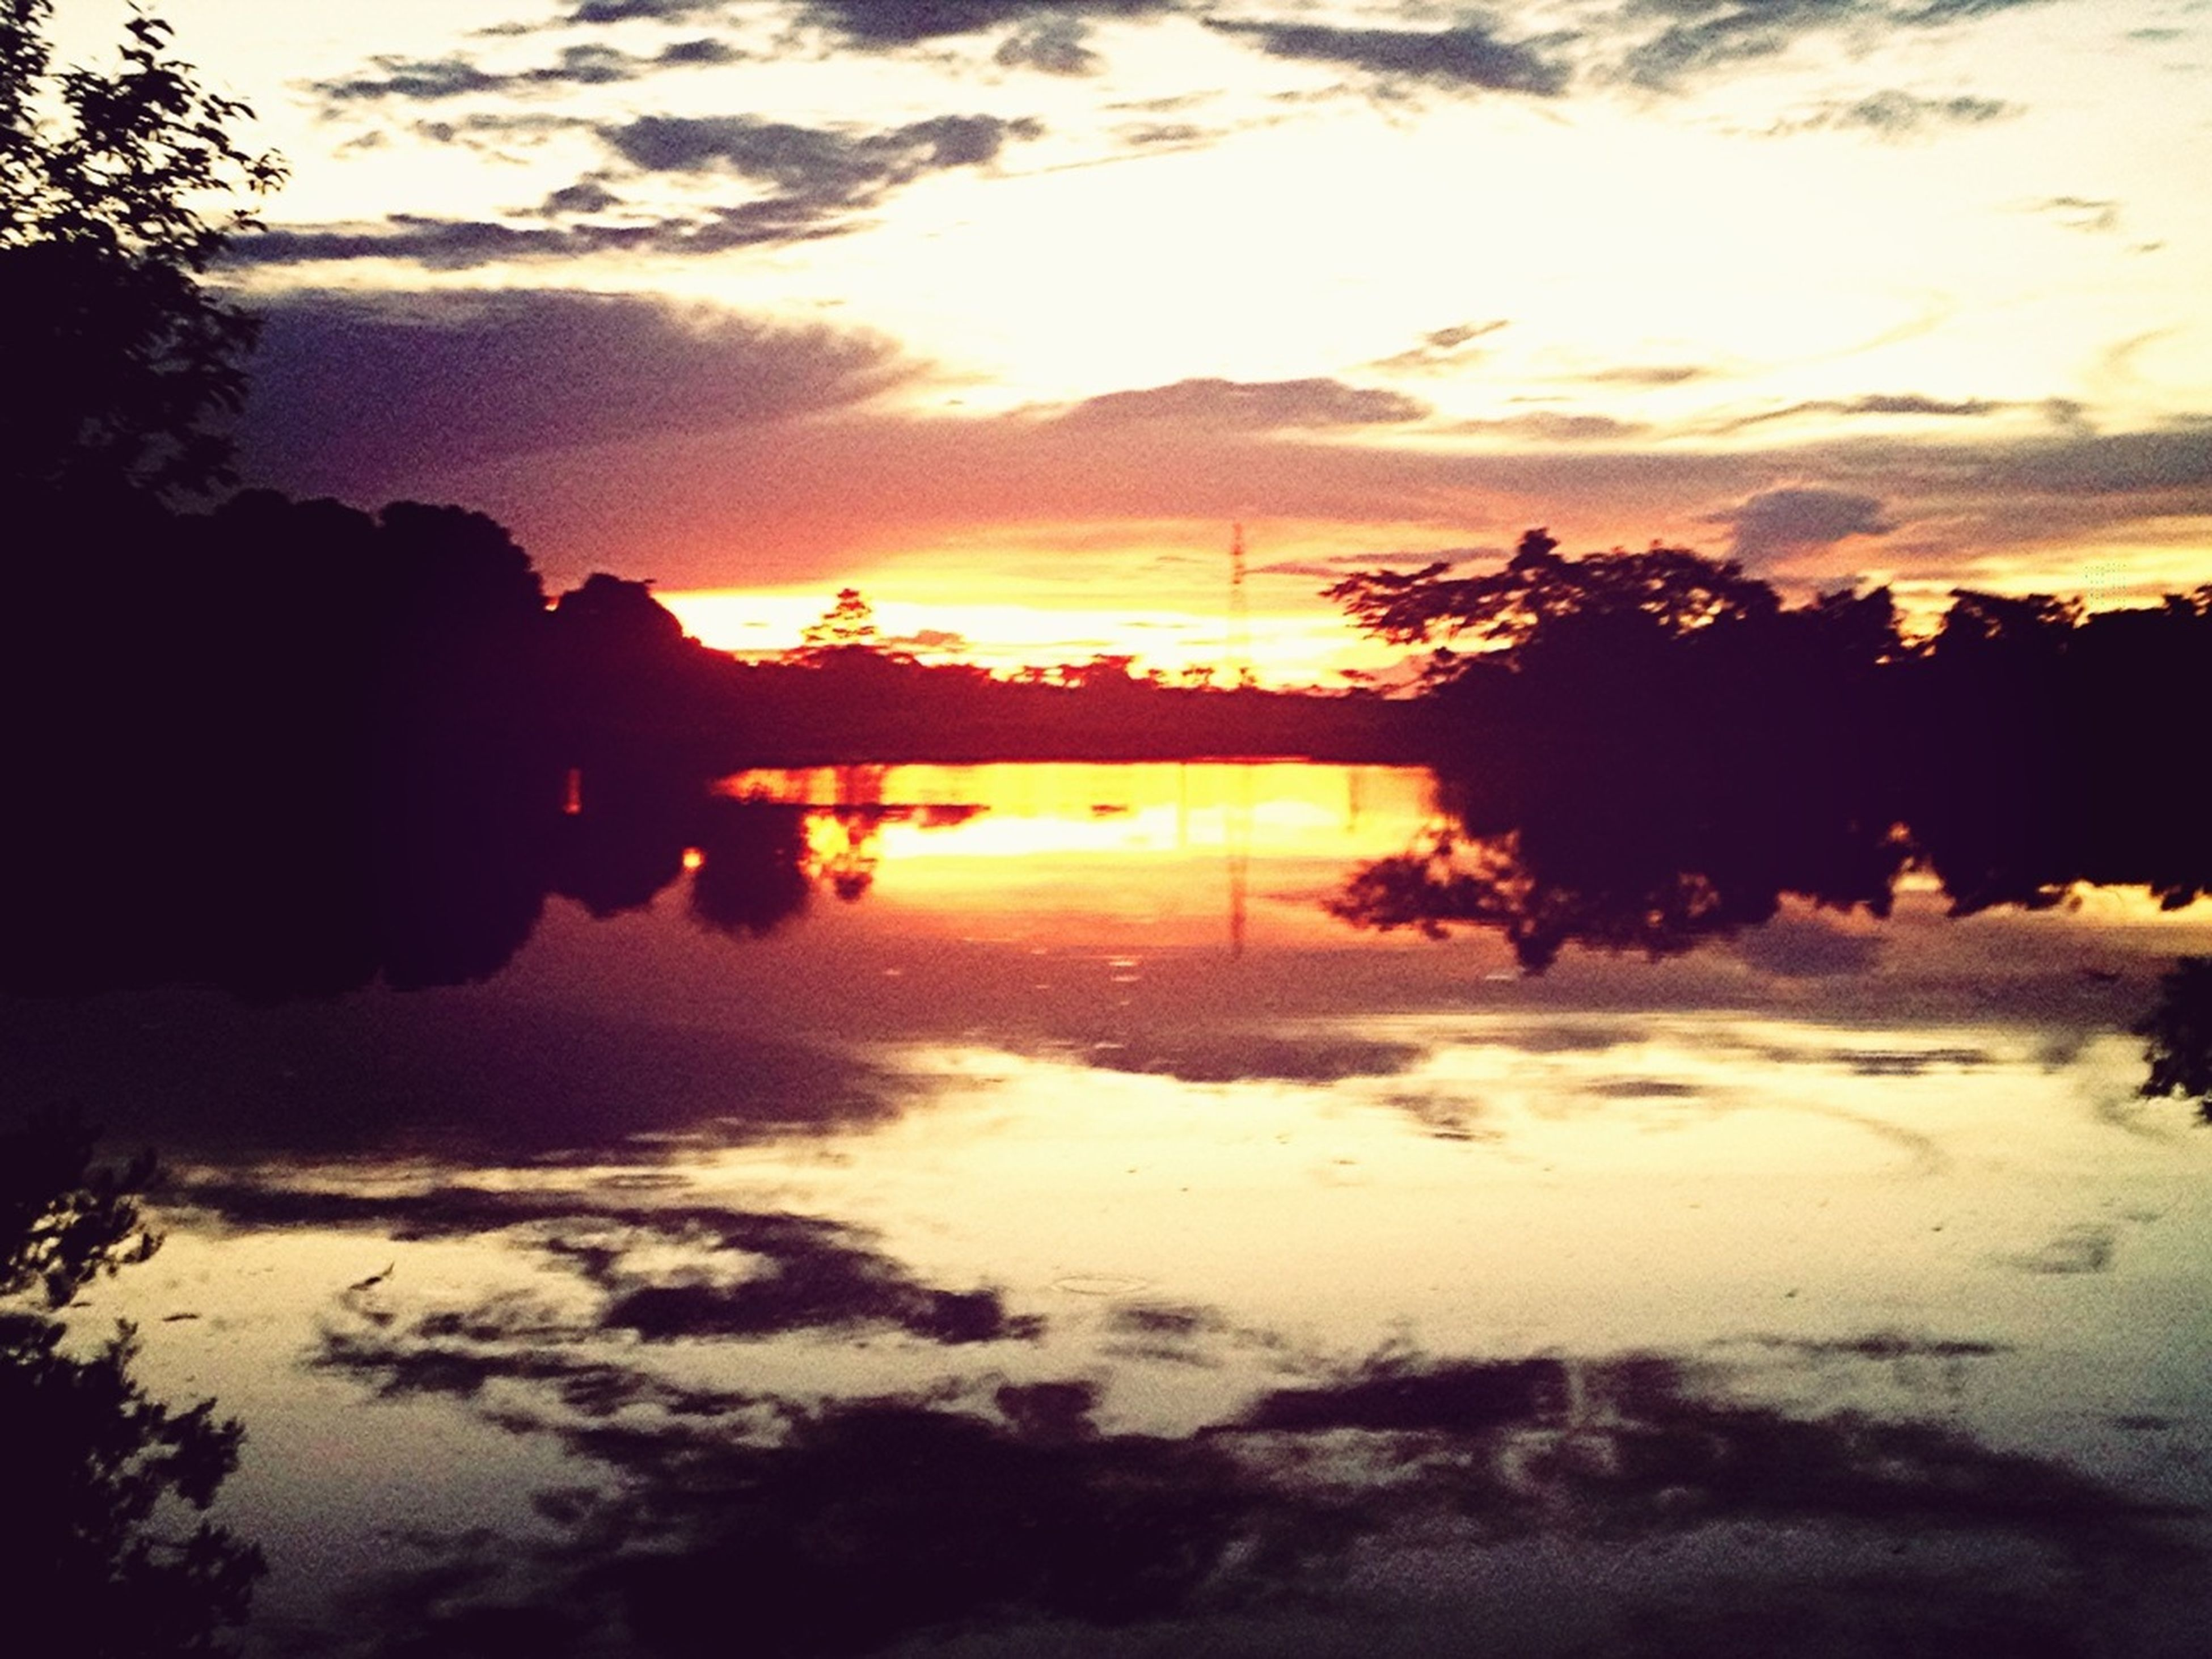 sunset, water, orange color, silhouette, sky, sun, scenics, beauty in nature, tranquil scene, tranquility, tree, reflection, cloud - sky, nature, lake, idyllic, river, sunlight, cloud, outdoors